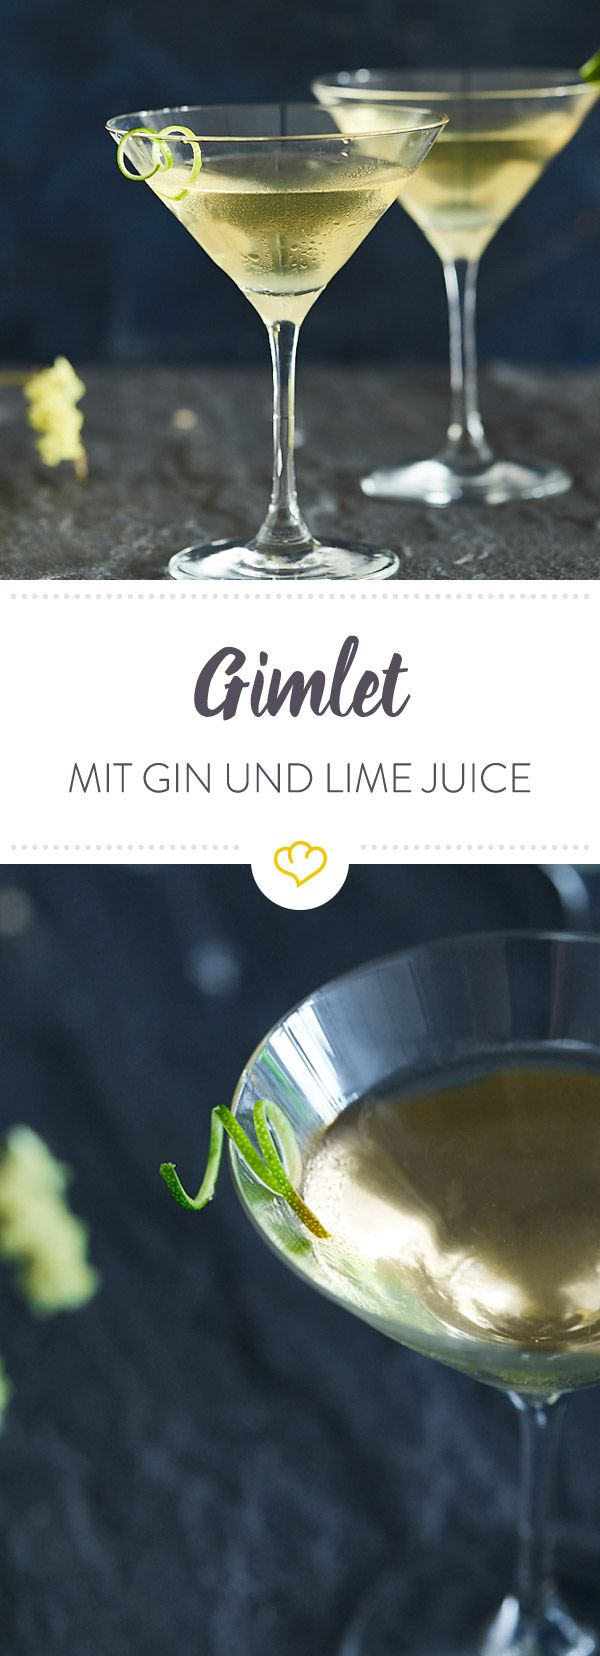 Photo of Gimlet cocktail